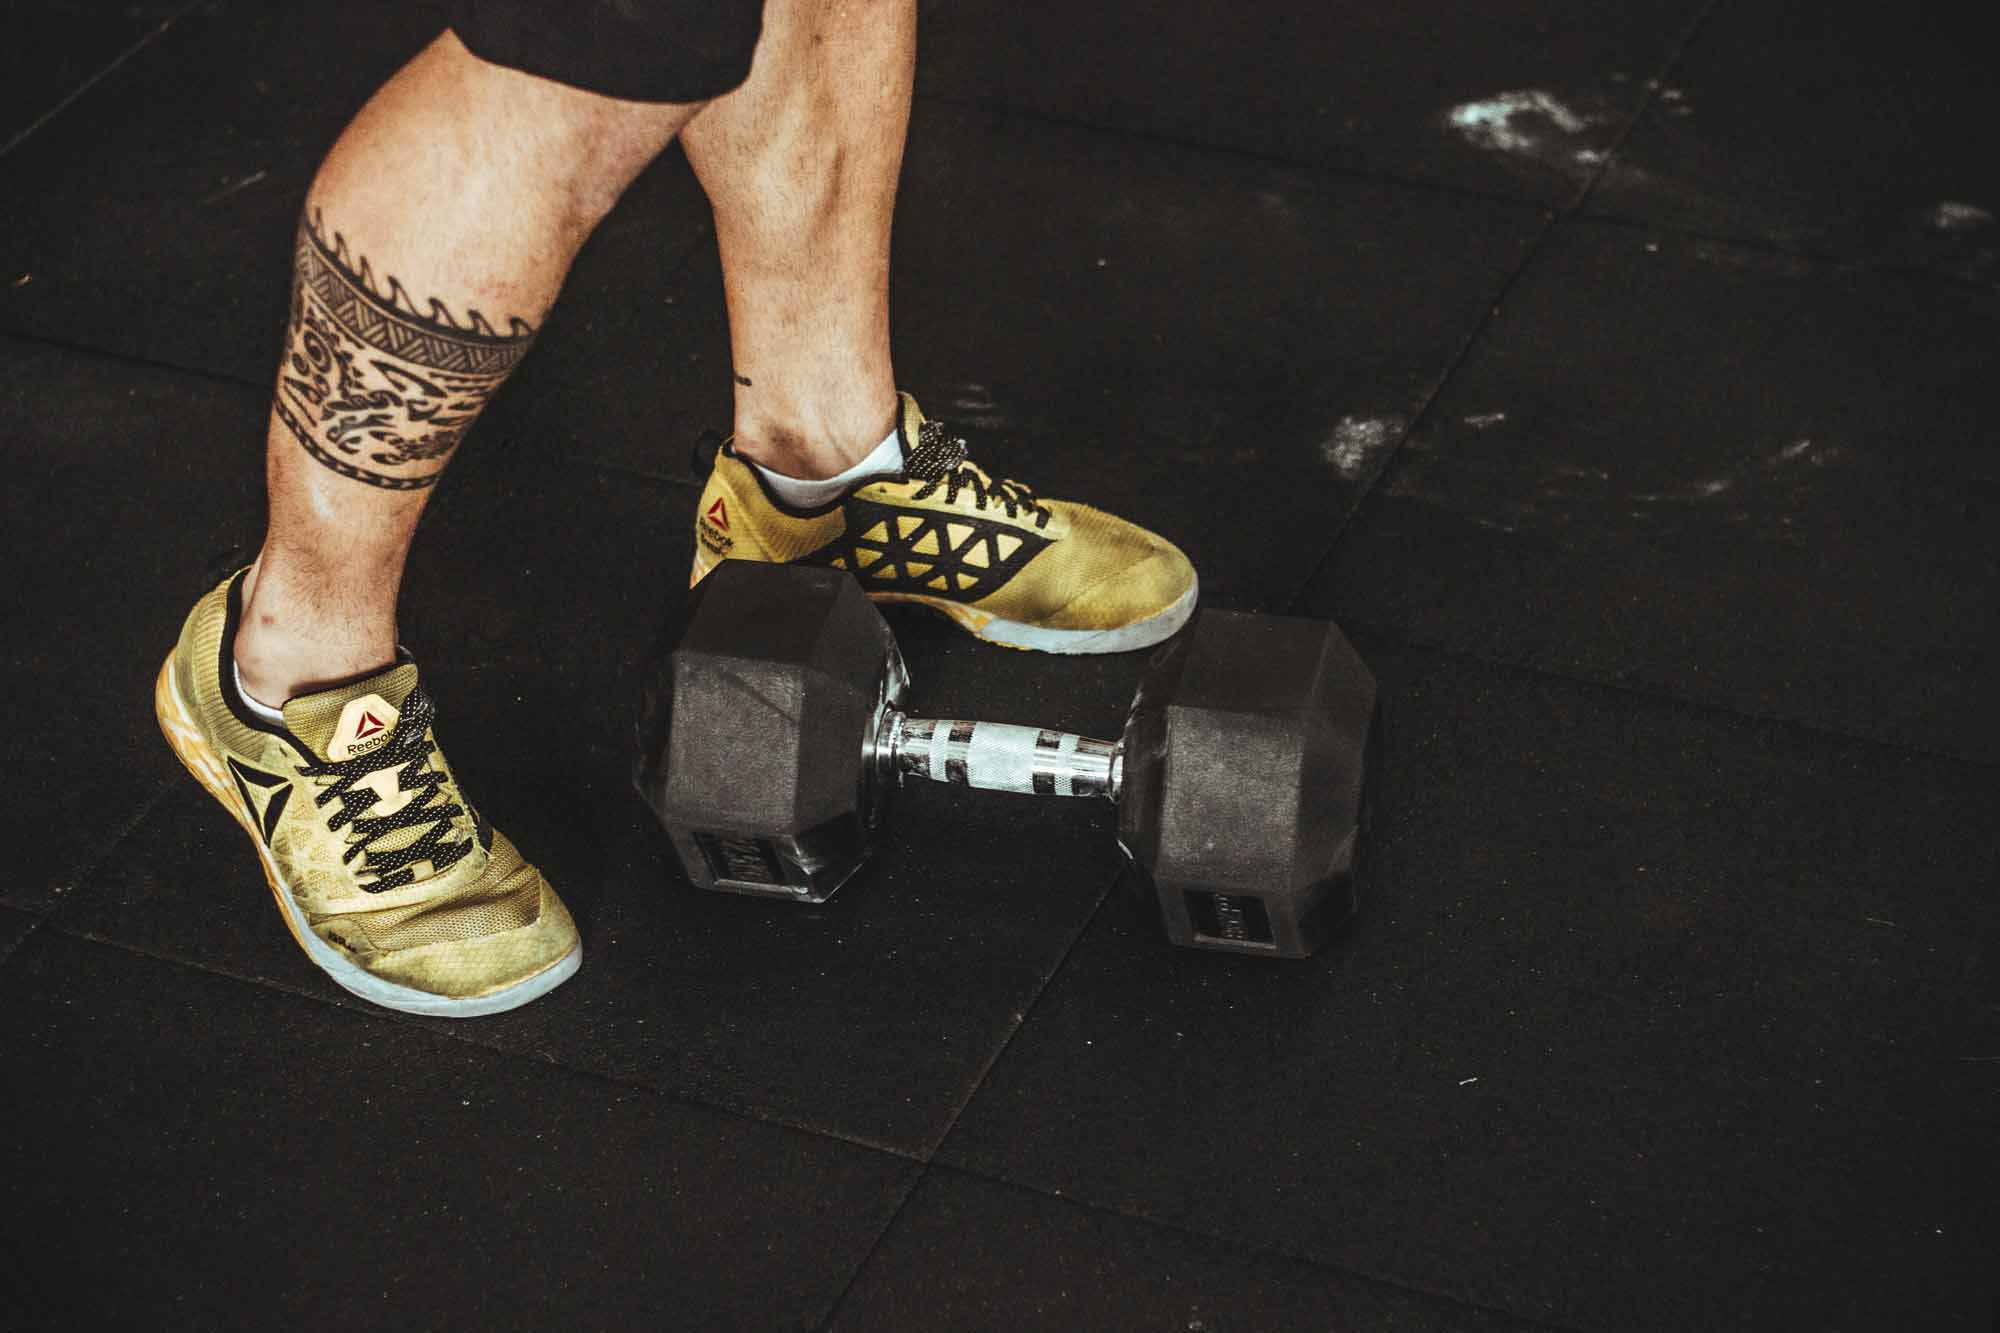 7 Surprising Benefits of Strength Training that are Backed by Science